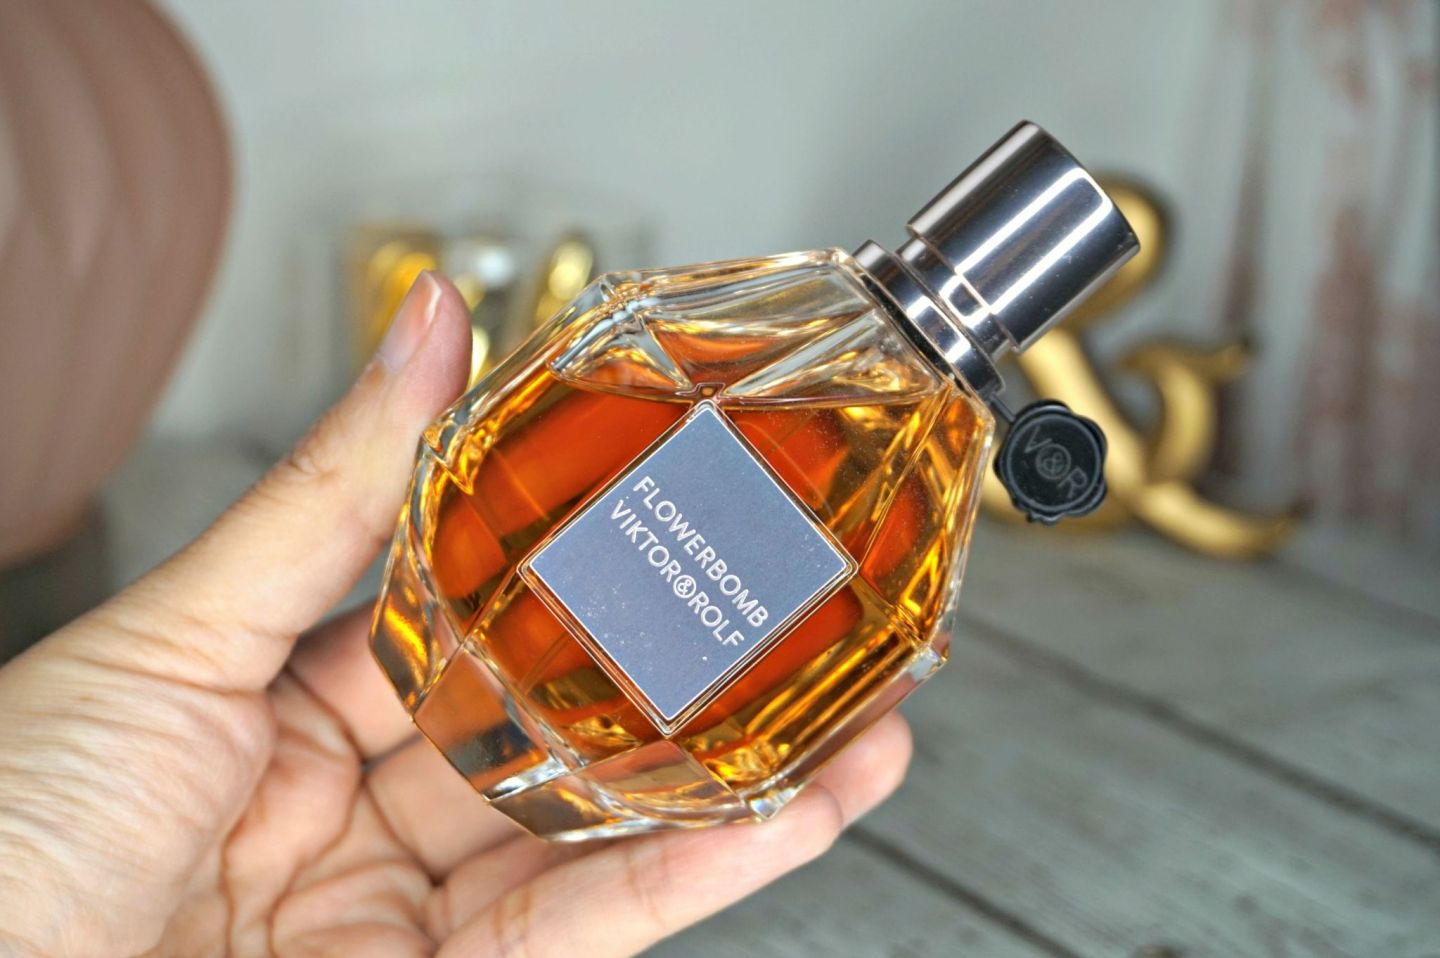 Best Sophisticated Perfumes // Best Perfumes For Women // Perfumes For Women That Aren't Stuffy // Fragrances for Women   Beauty With Lily